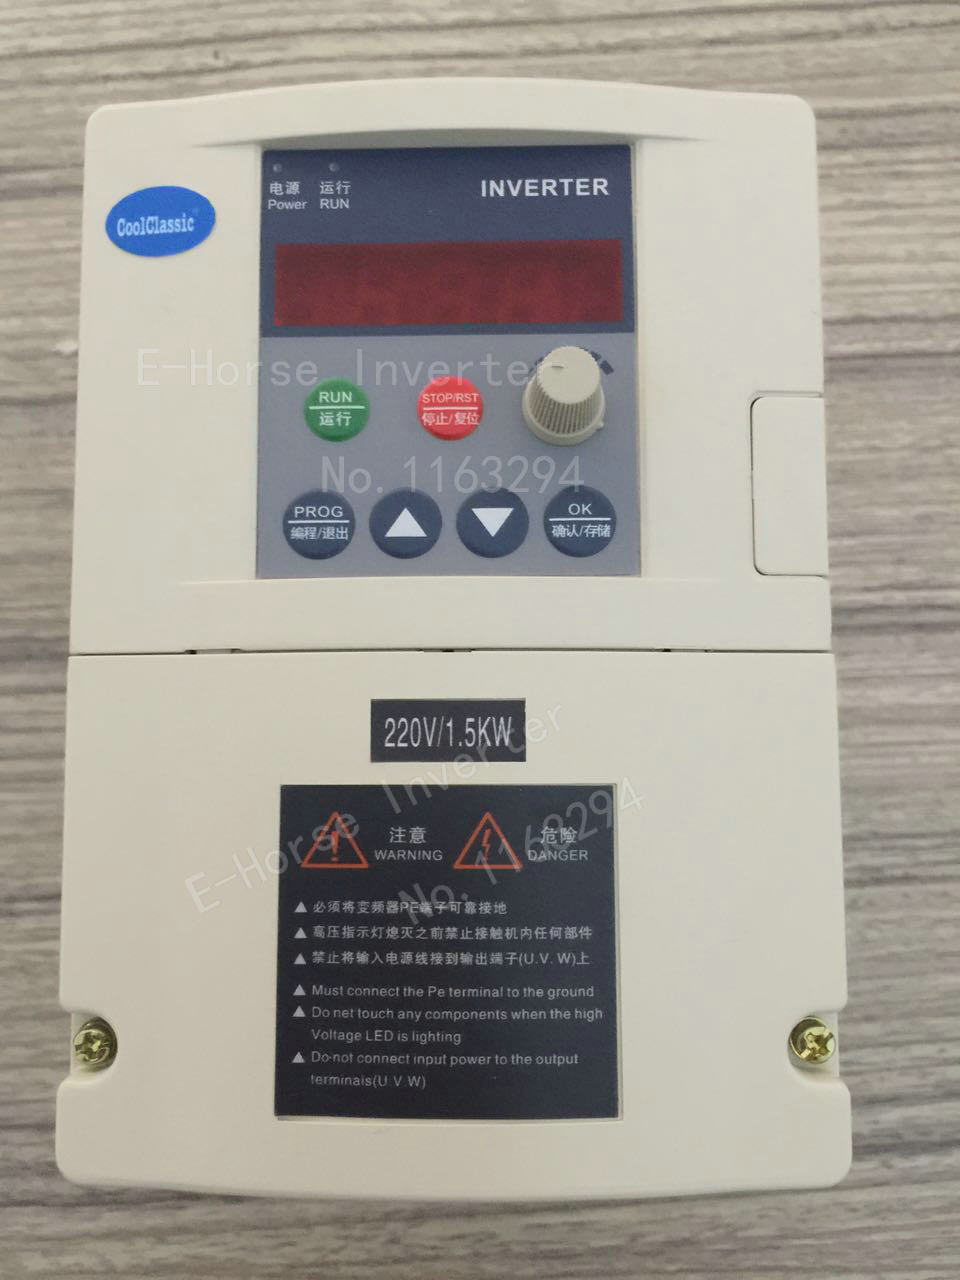 Vfd inverter free shipping jfd 1500w coolclassic inverter for Inverter for 3 phase motor